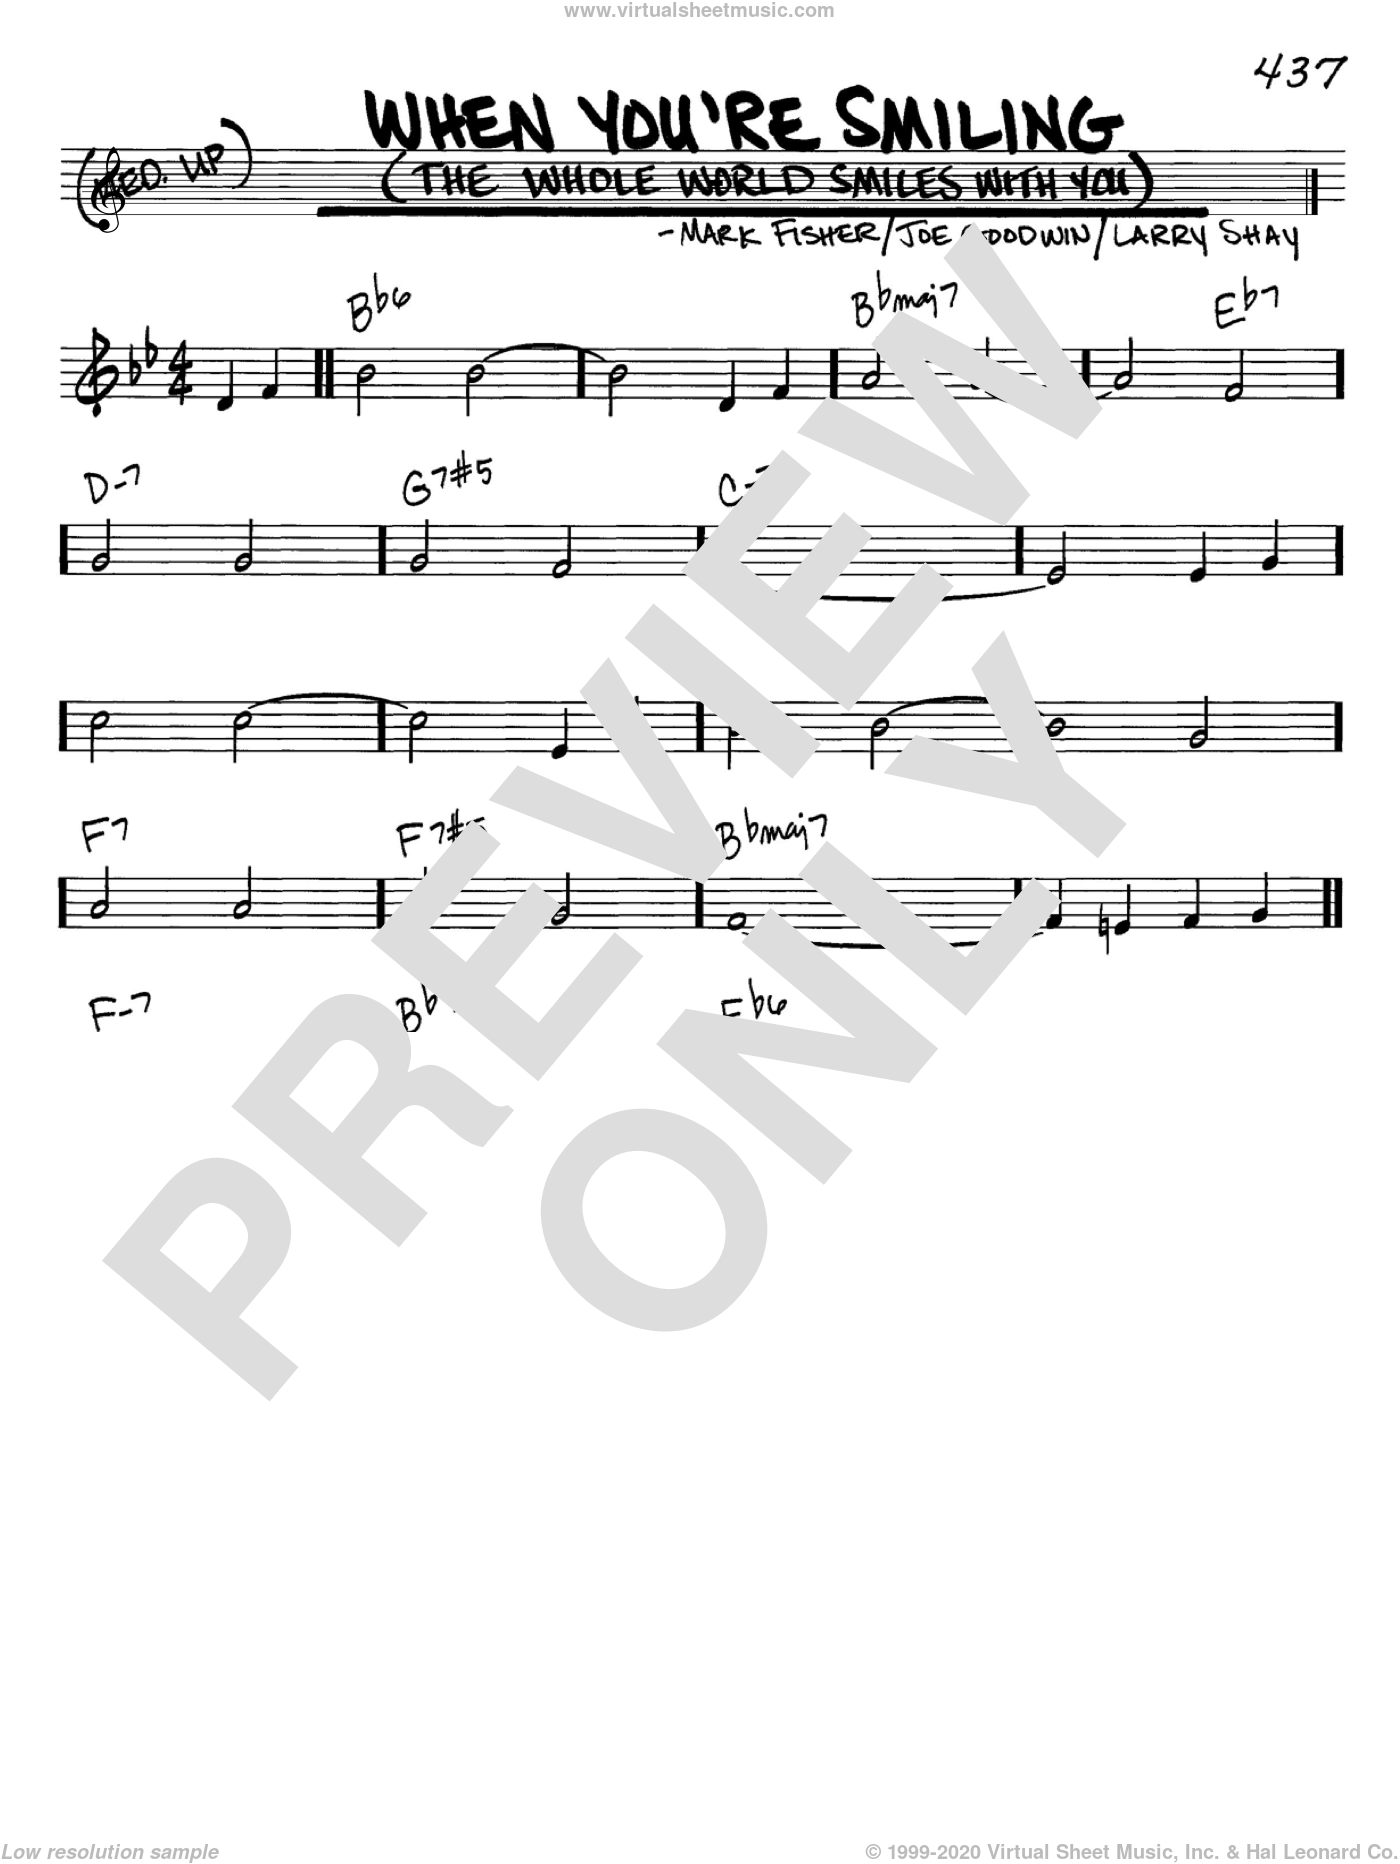 When You're Smiling (The Whole World Smiles With You) sheet music for voice and other instruments (in C) by Louis Armstrong, Joe Goodwin, Larry Shay and Mark Fisher, intermediate skill level